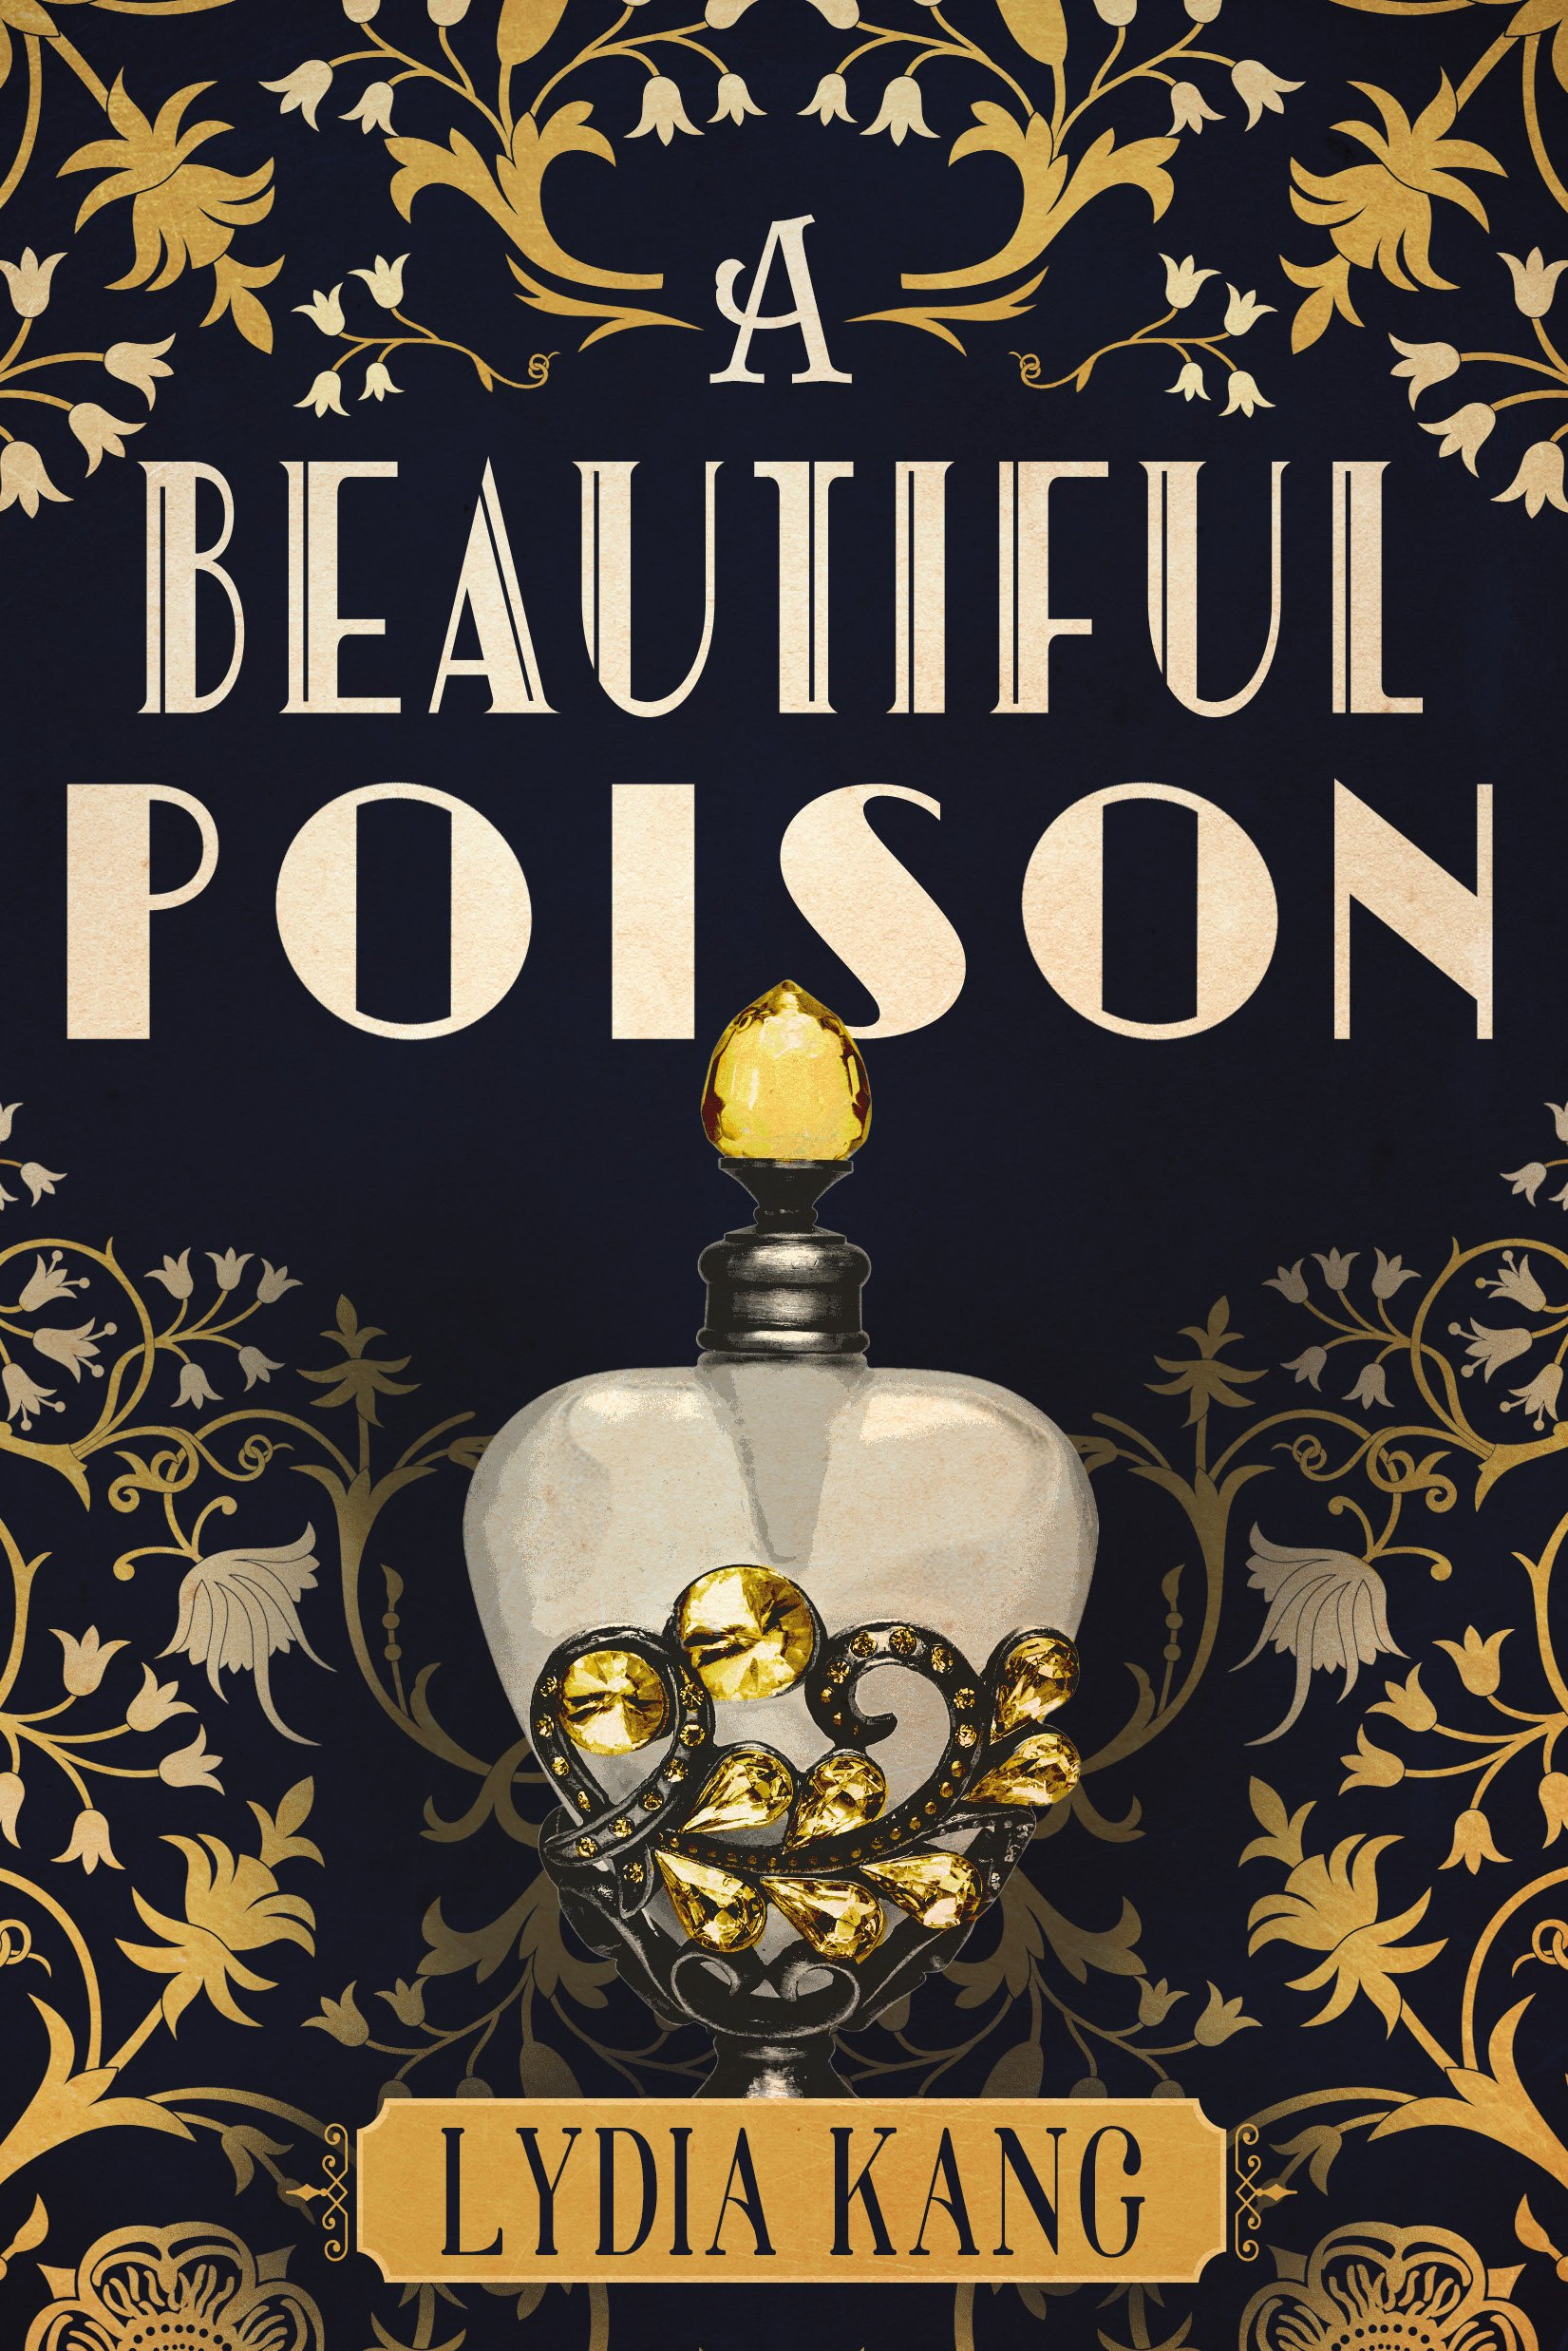 A-Beautiful-Poison-Cover.jpg